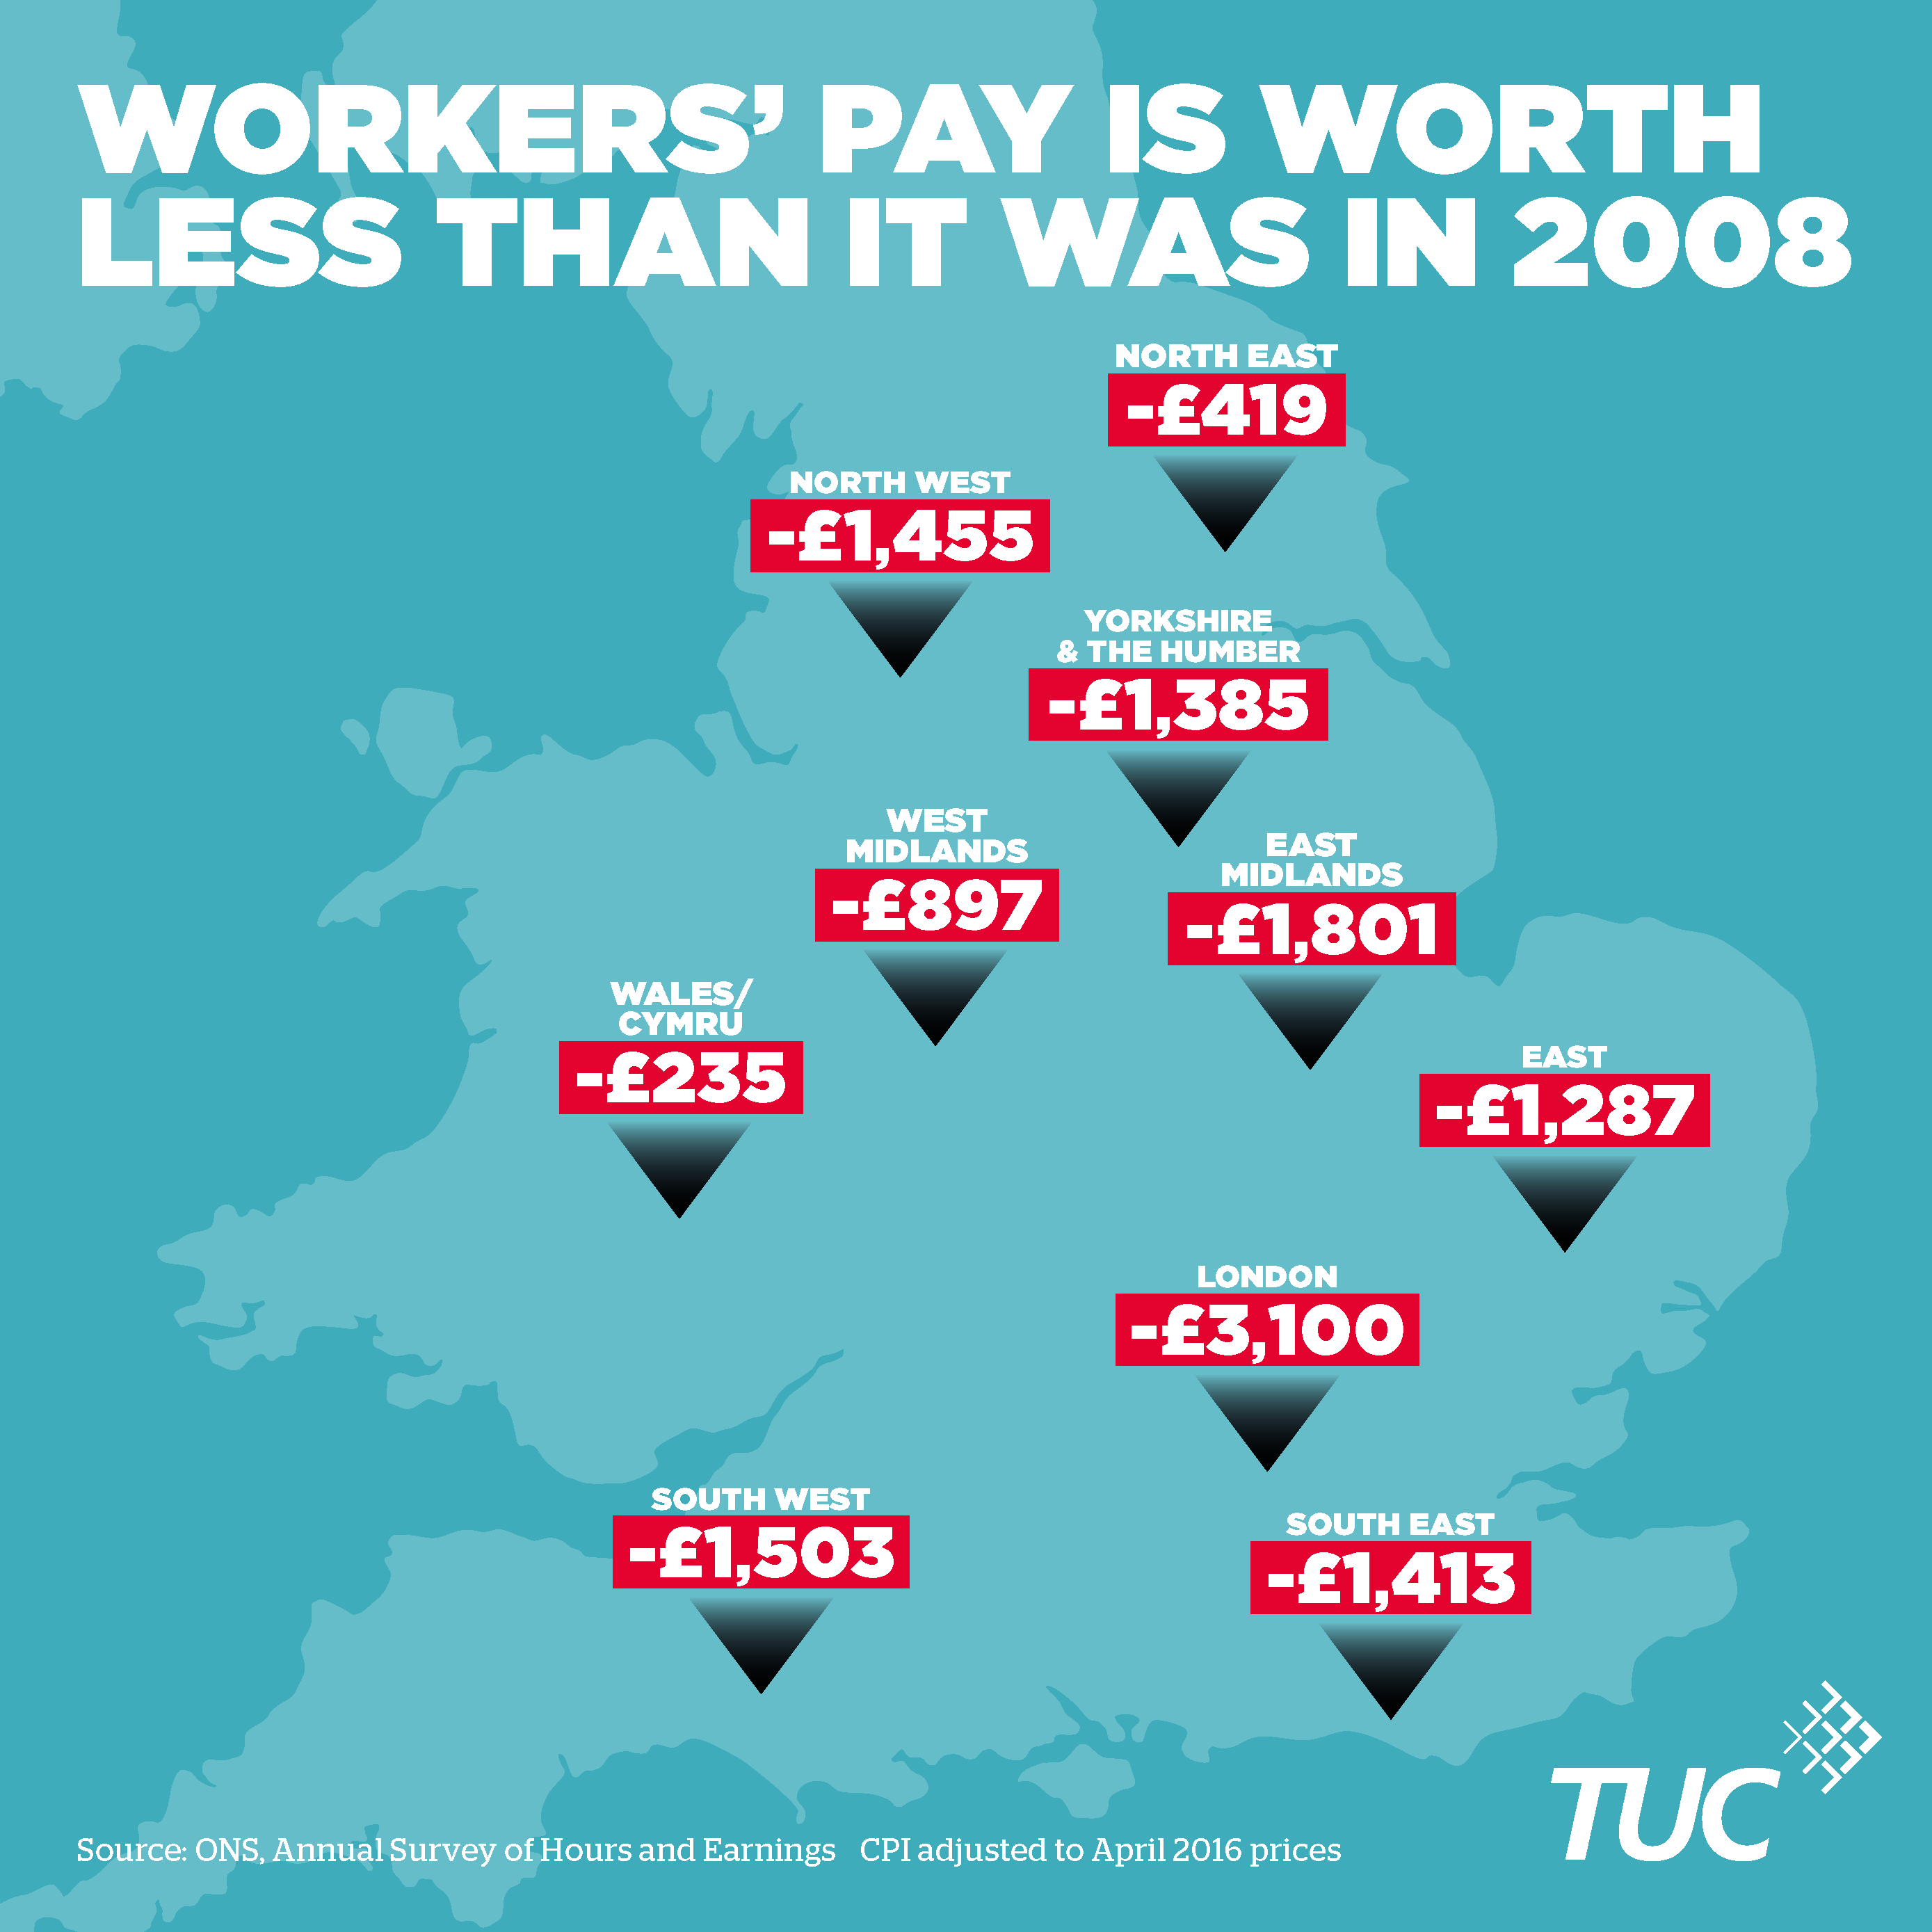 Workers pay is worth less